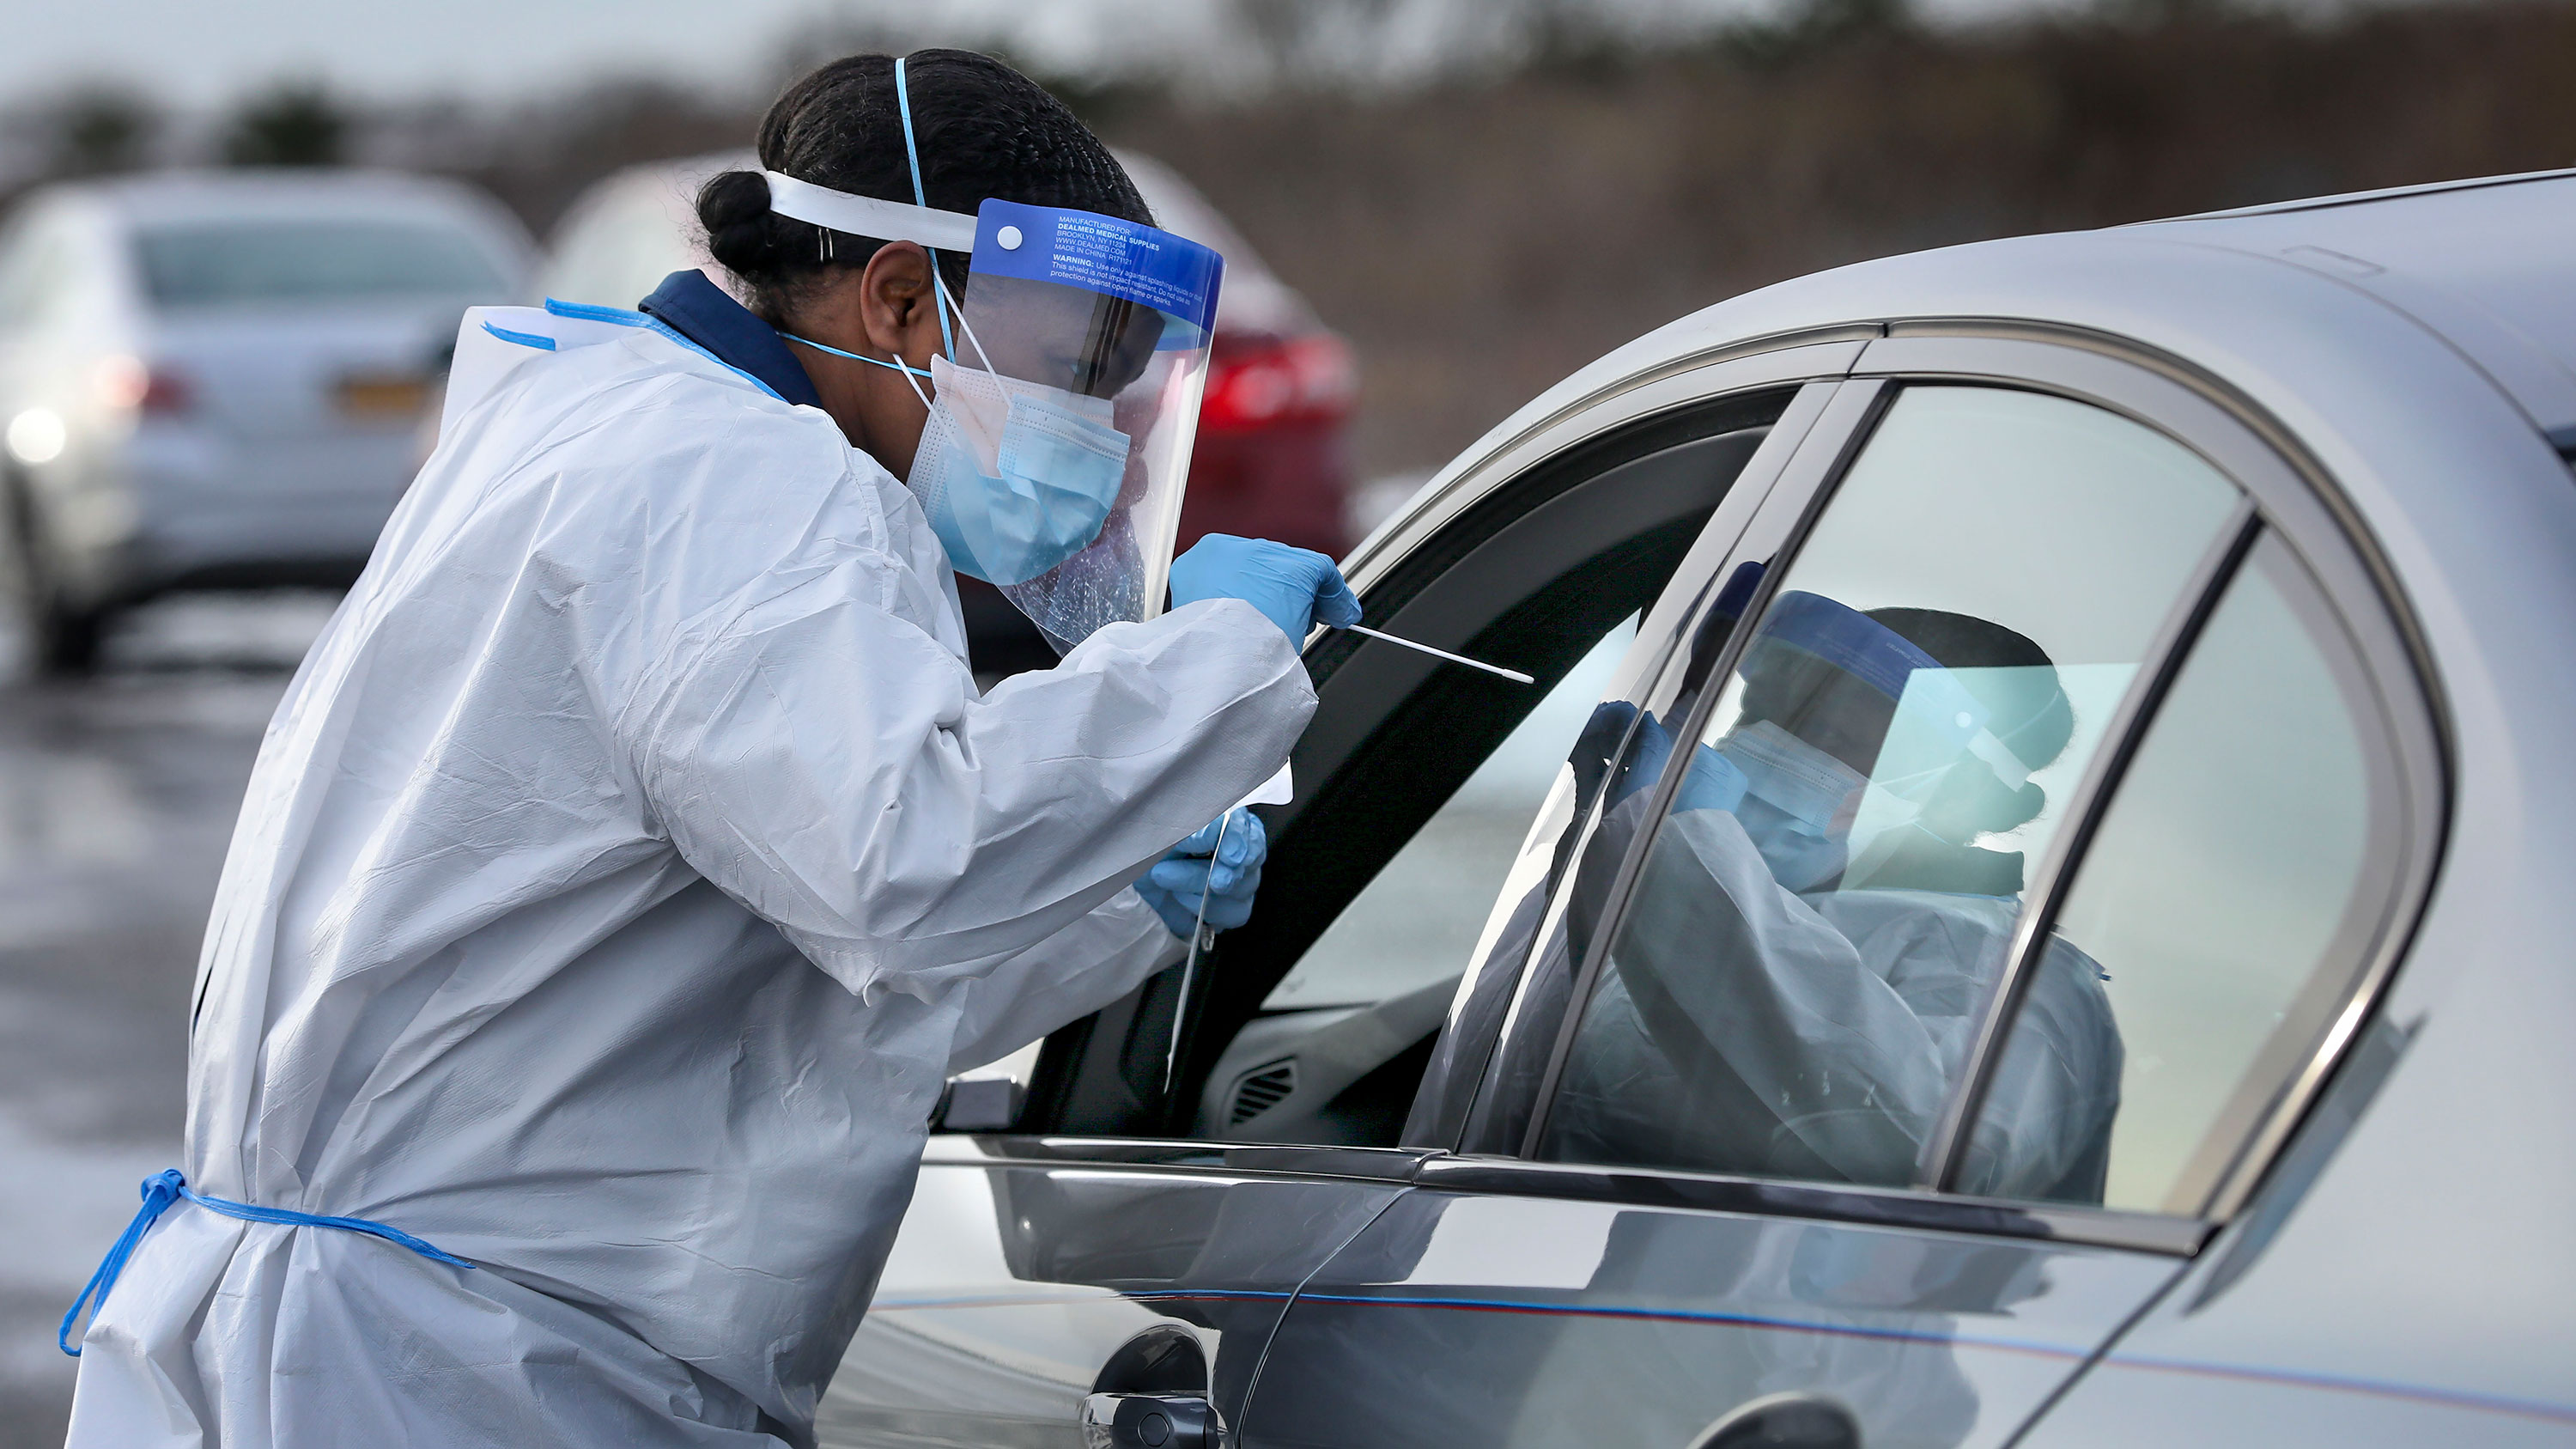 A nurse administers a Covid-19 swab test at a drive-thru testing site in Shirley, New York, on December 19.